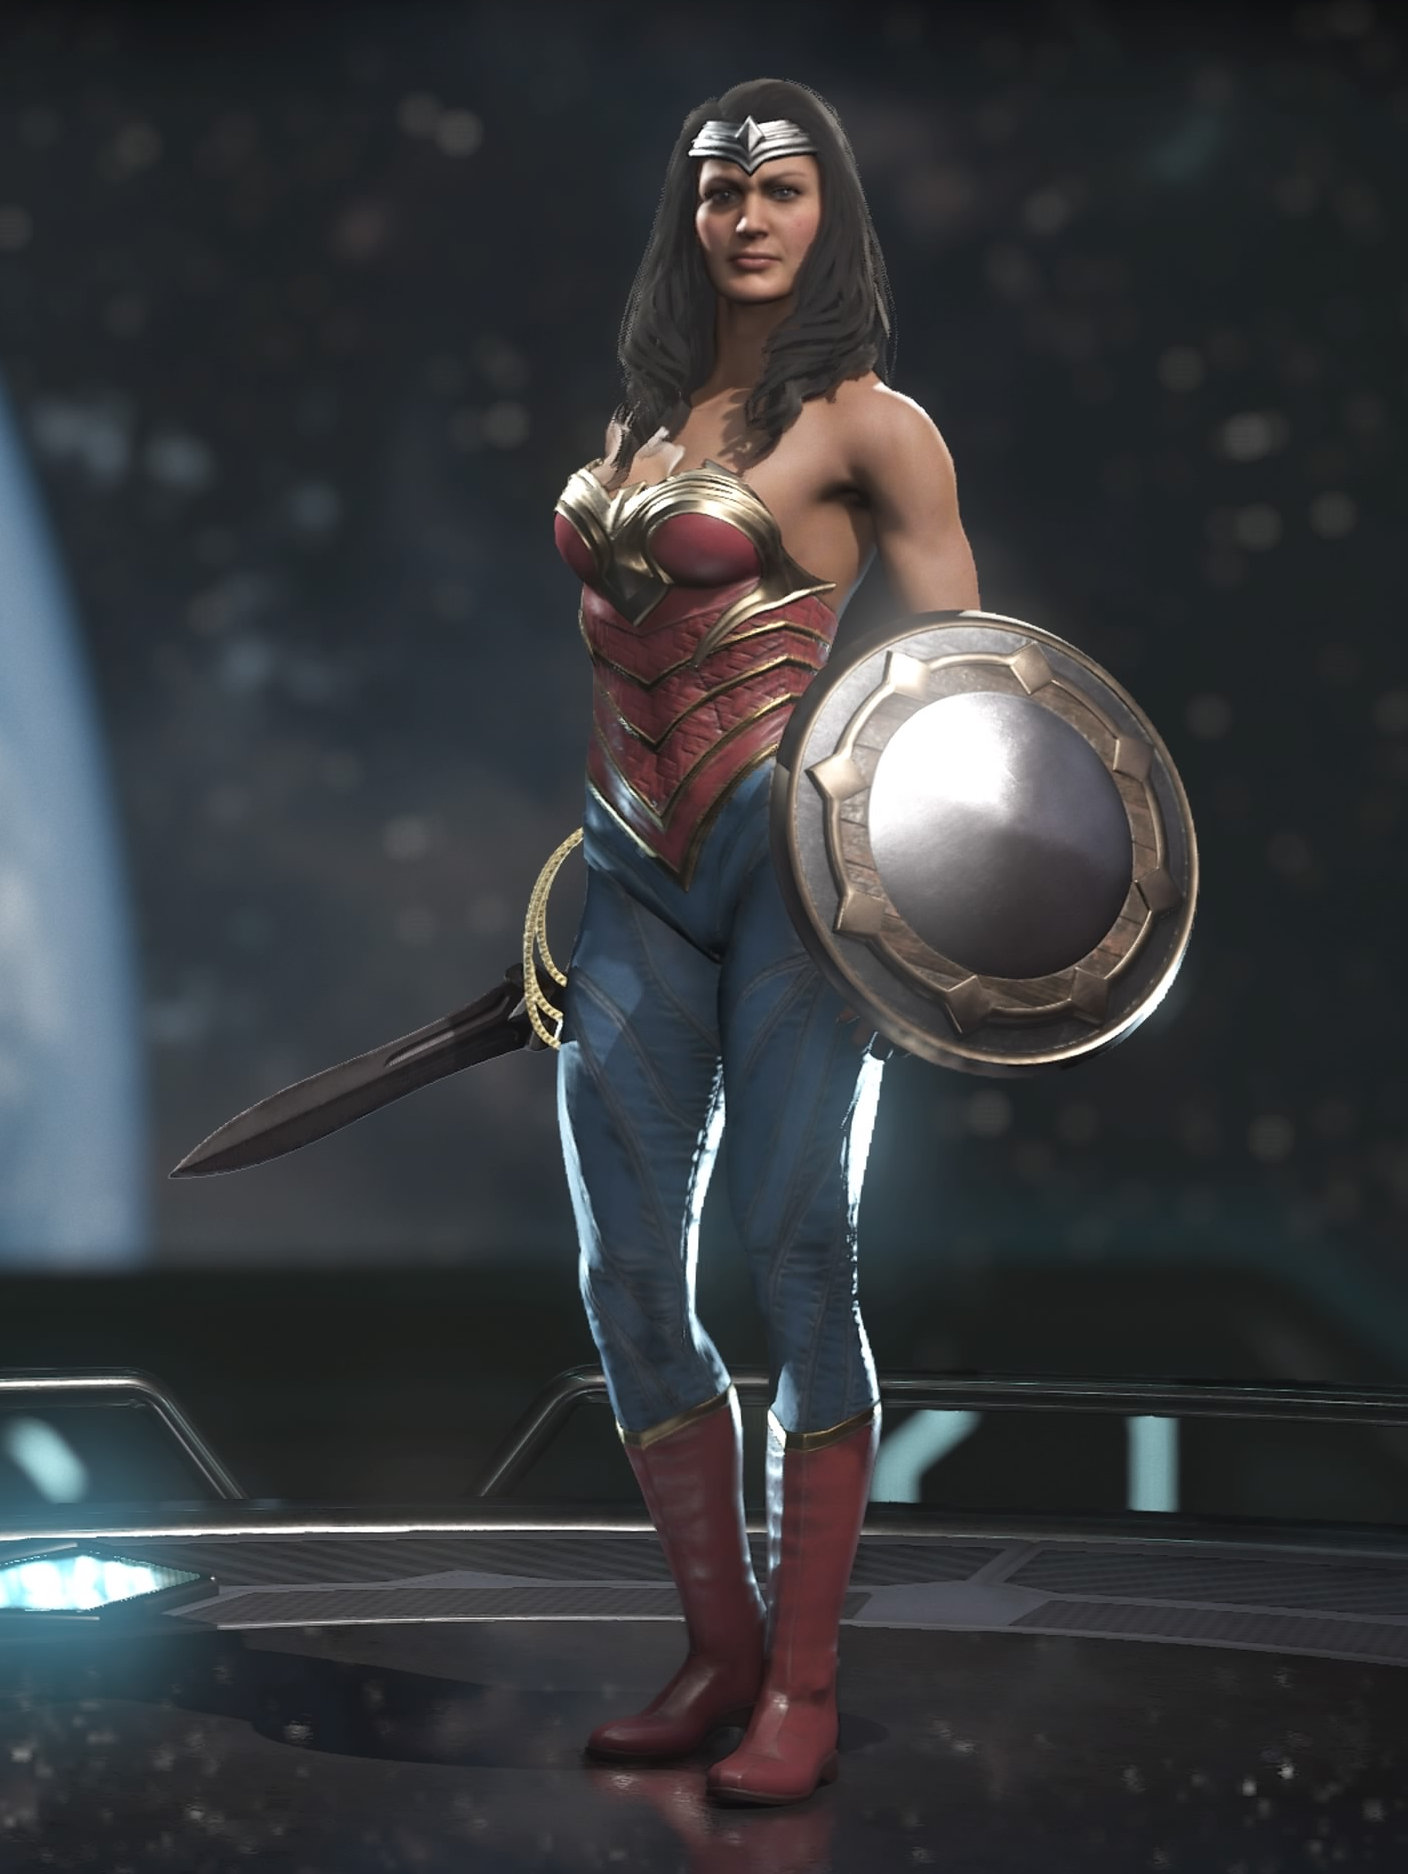 Image result for injustice wonder woman